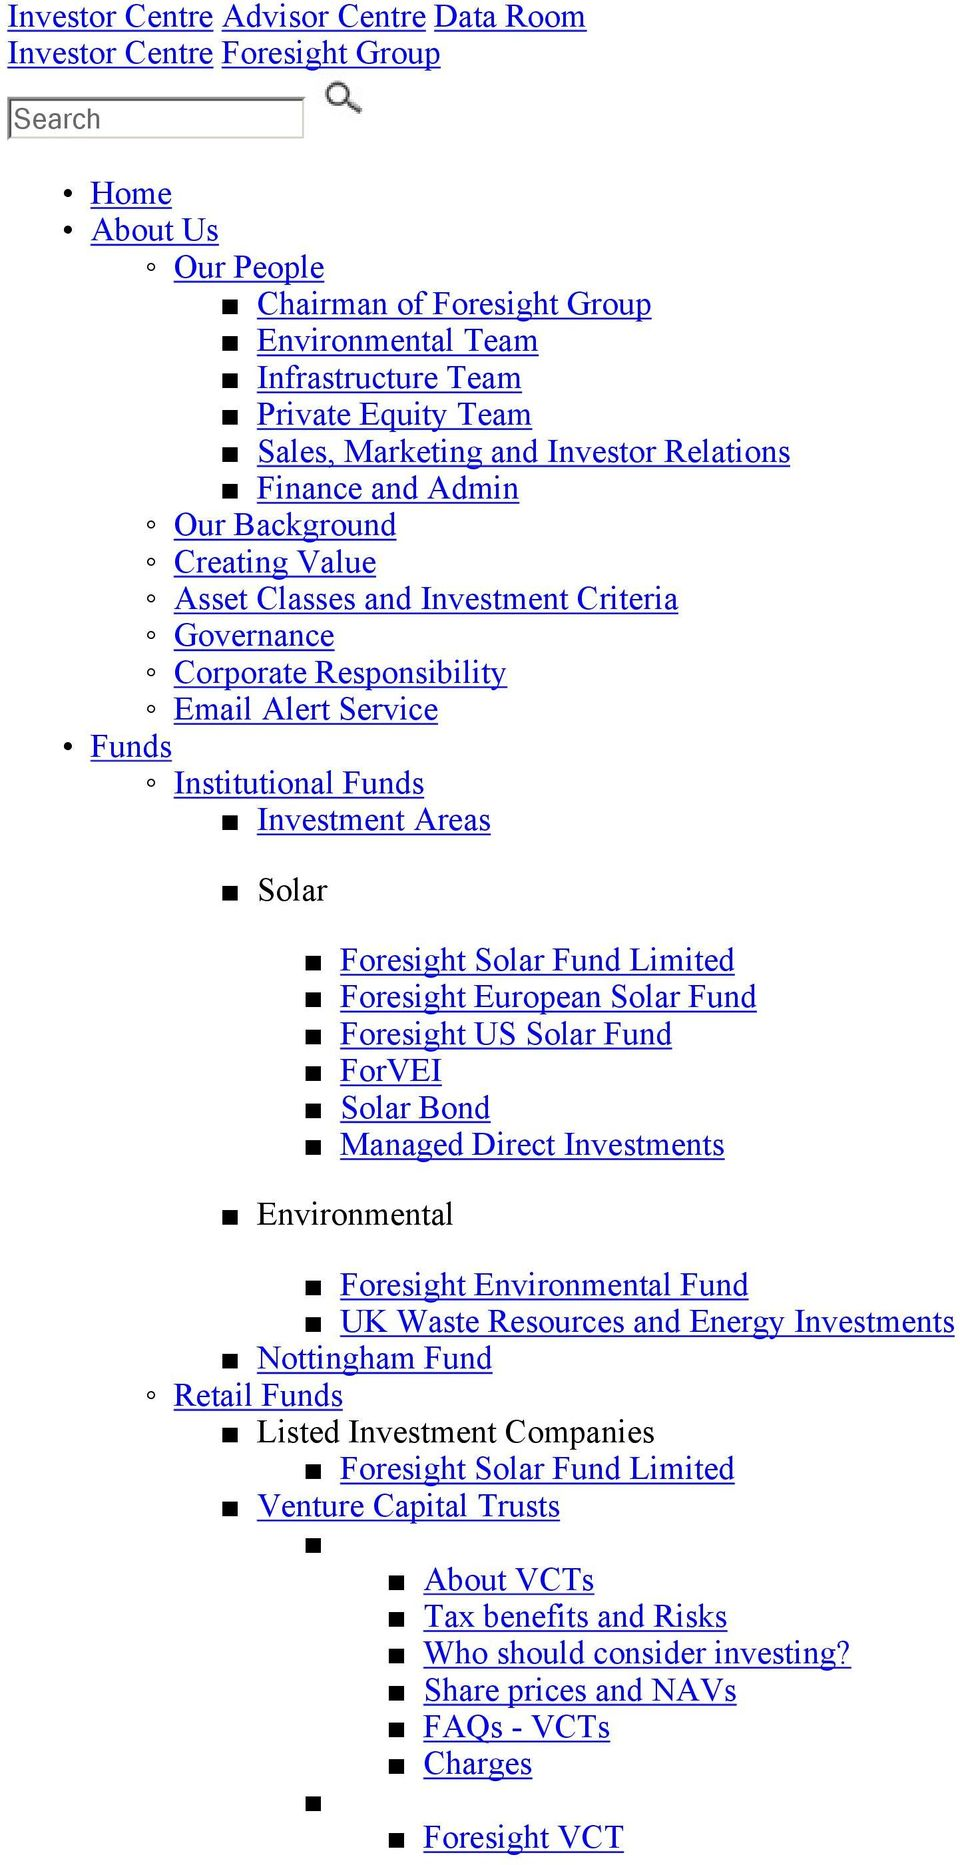 Funds Investment Areas Solar Foresight Solar Fund Limited Foresight European Solar Fund Foresight US Solar Fund ForVEI Solar Bond Managed Direct Investments Environmental Foresight Environmental Fund